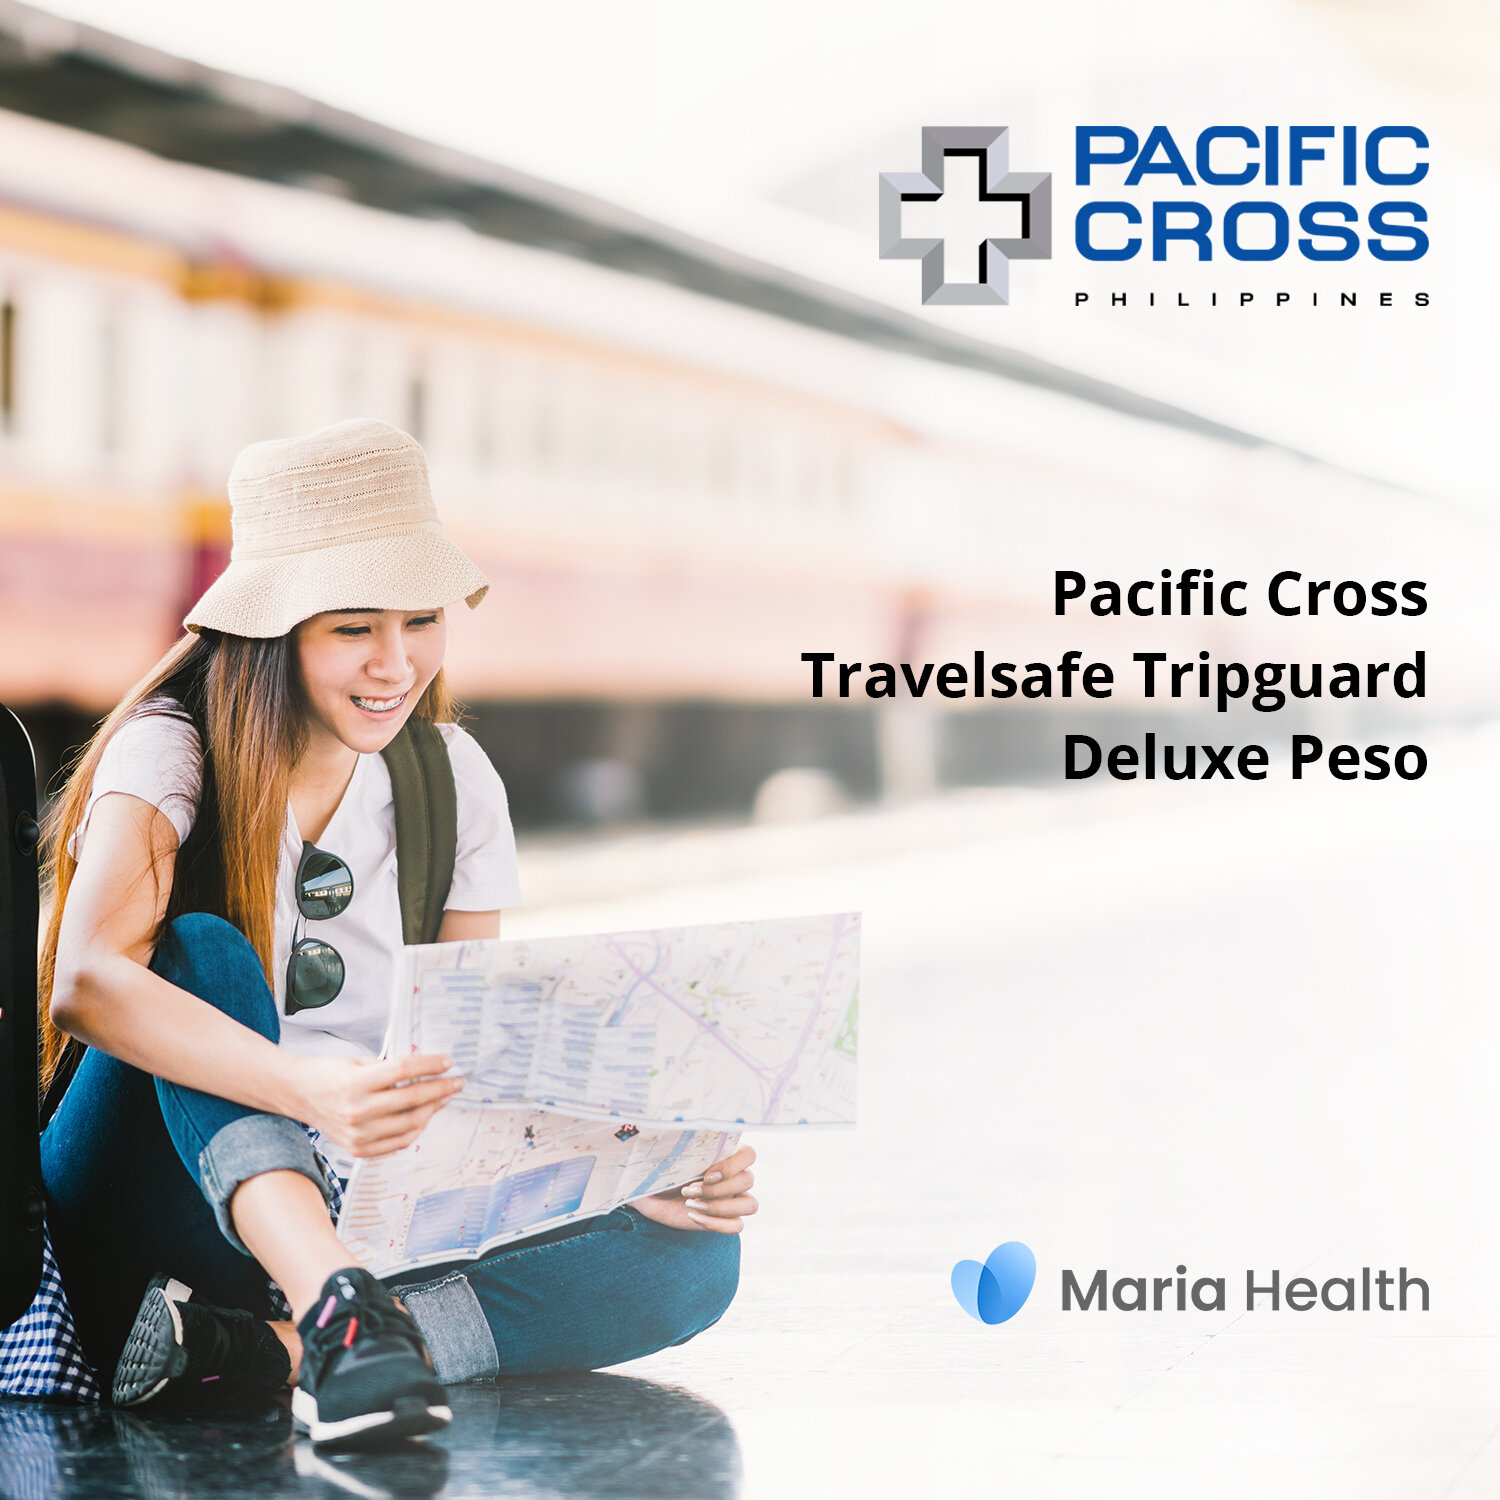 Pacific Cross Tripguard Deluxe Peso    ₱364 one-time payment   The Travelsafe Tripguard Deluxe Peso lets you enjoy up to ₱1,500,000 of medical treatment with travel inconveniences, and personal accidents when you're travelling